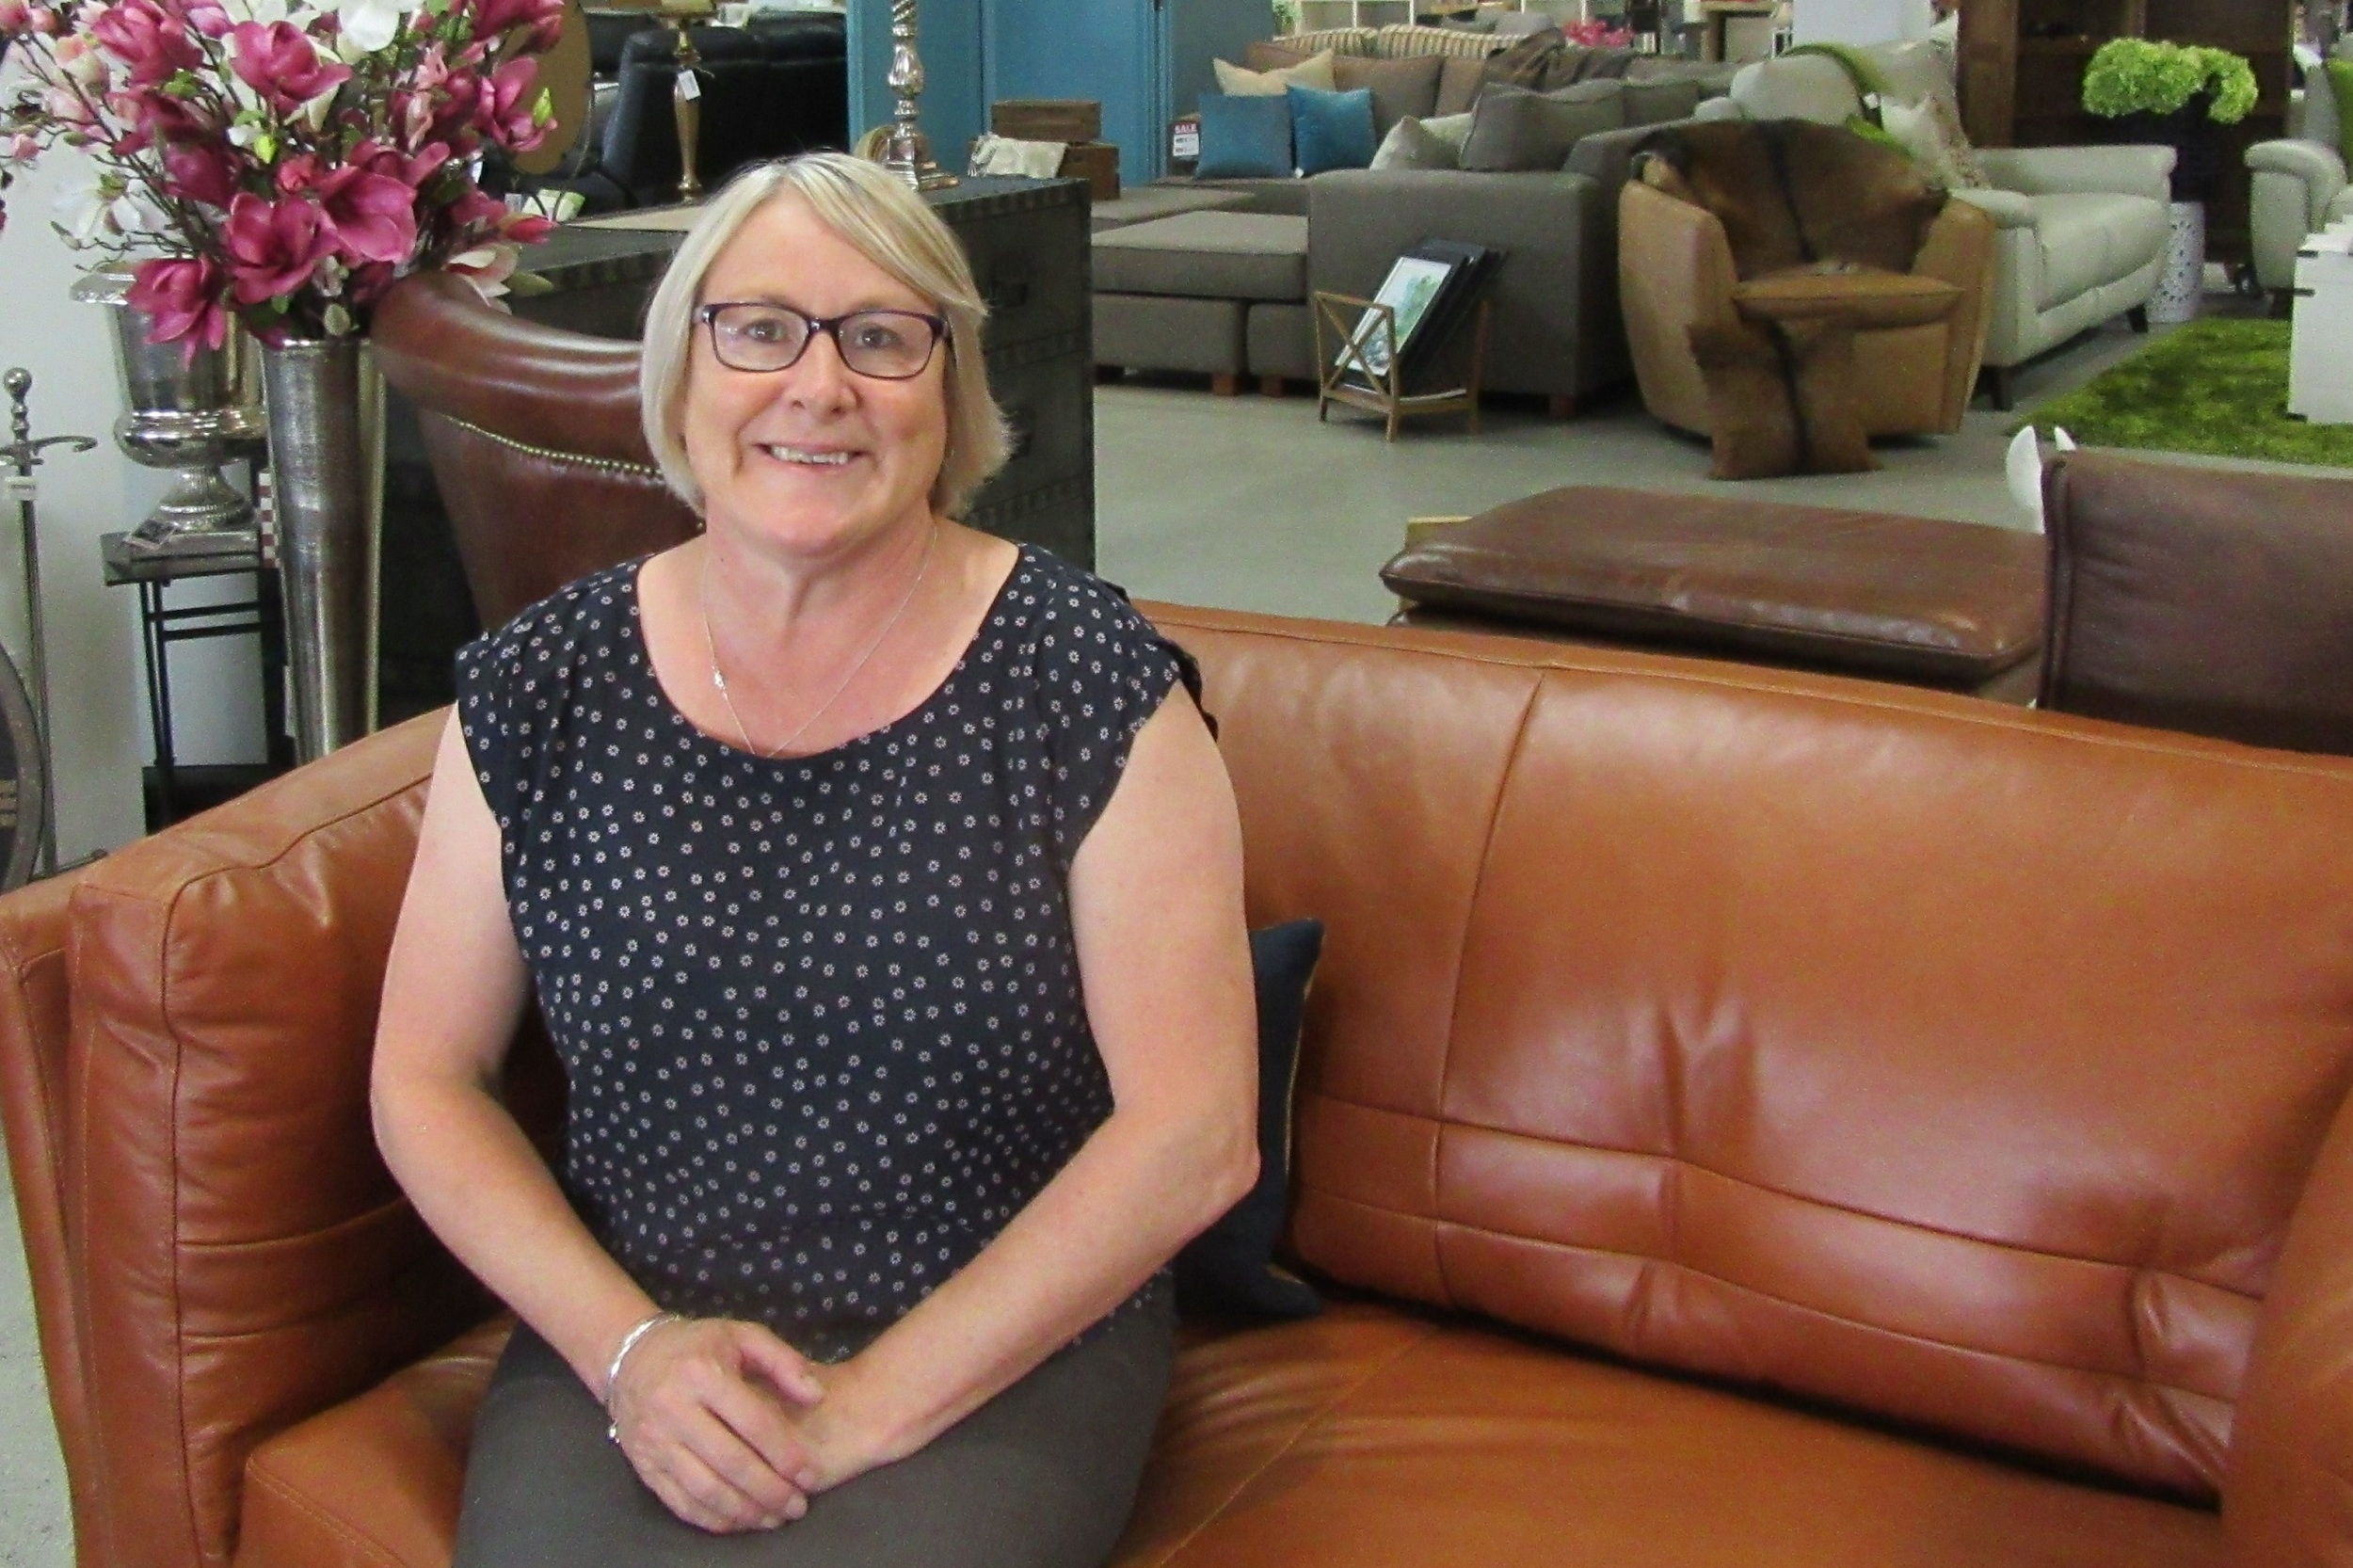 Bev McNaughten - Come in and see us at homeward. We have so much to offer and we look forward to sharing what we do with you.